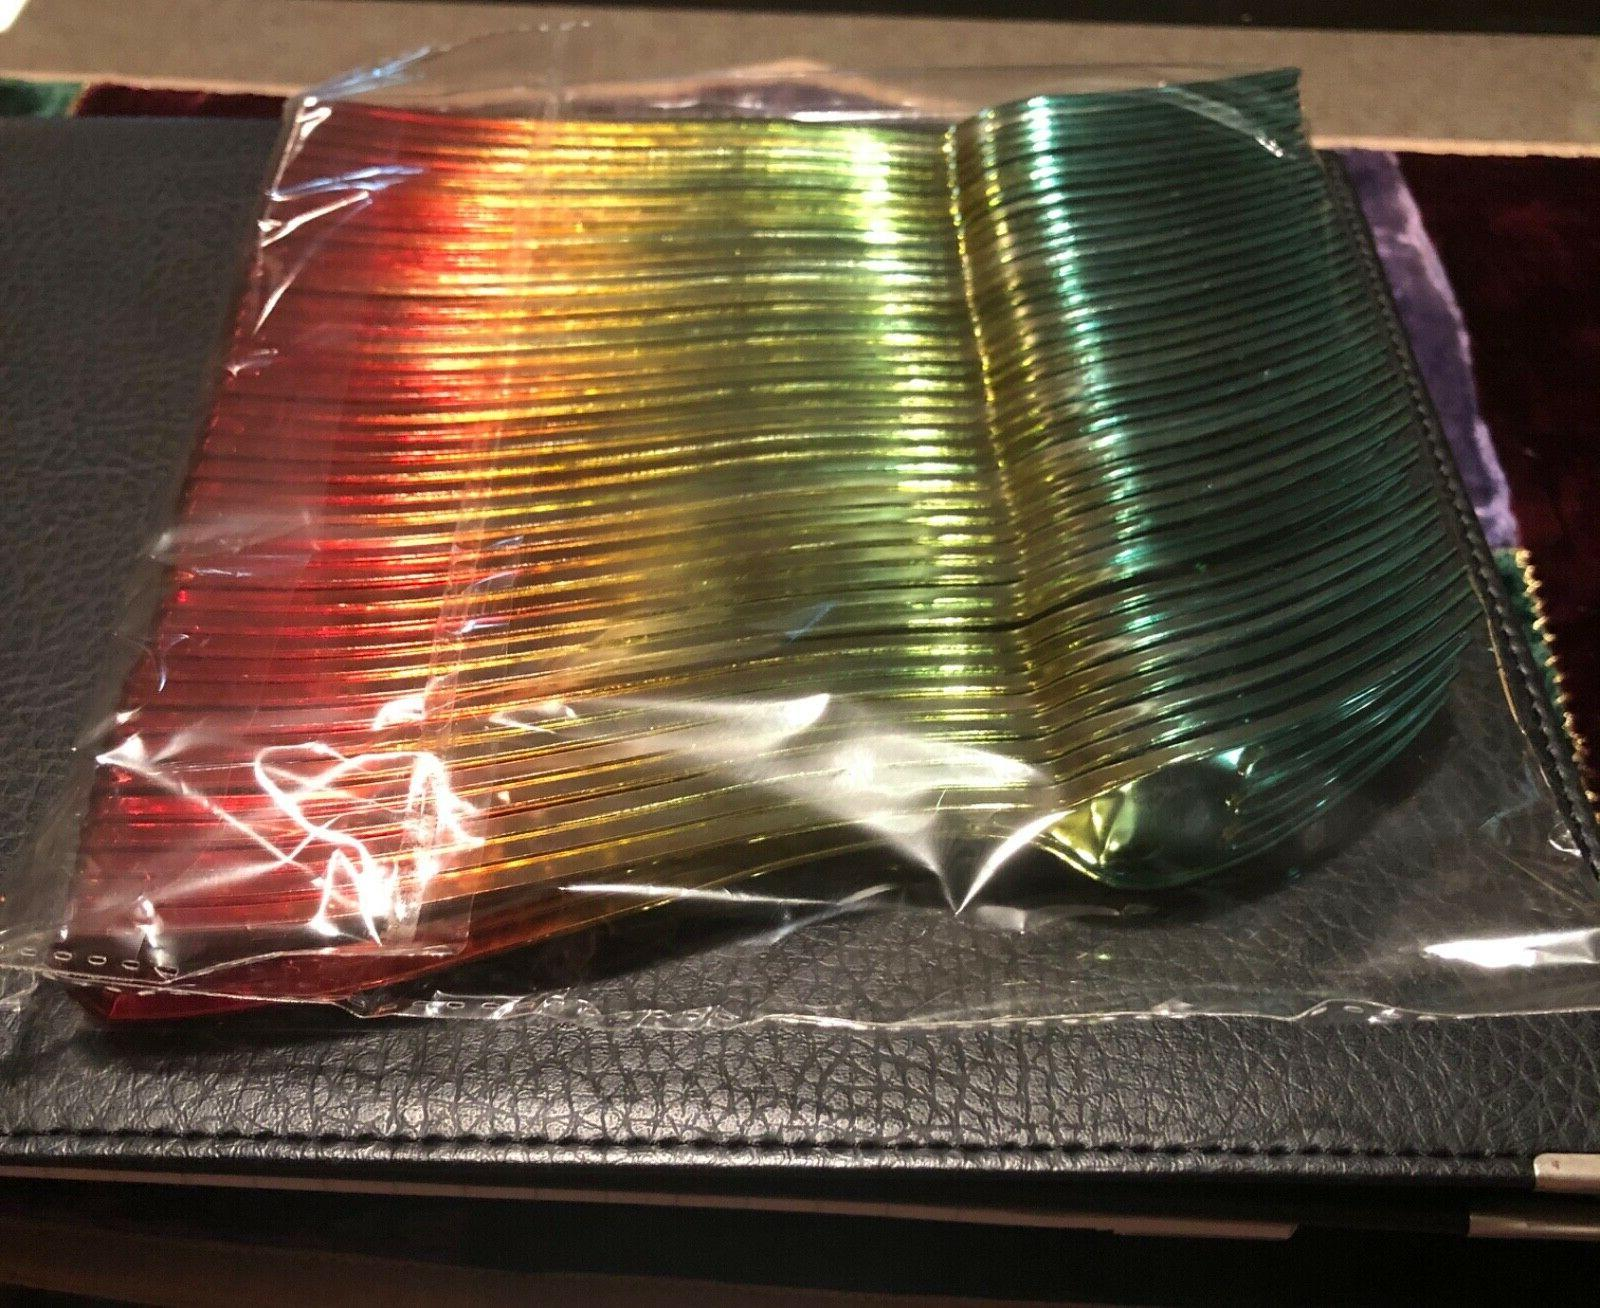 40 NEW AWESOME RAINBOW FORKS Disposable utensils